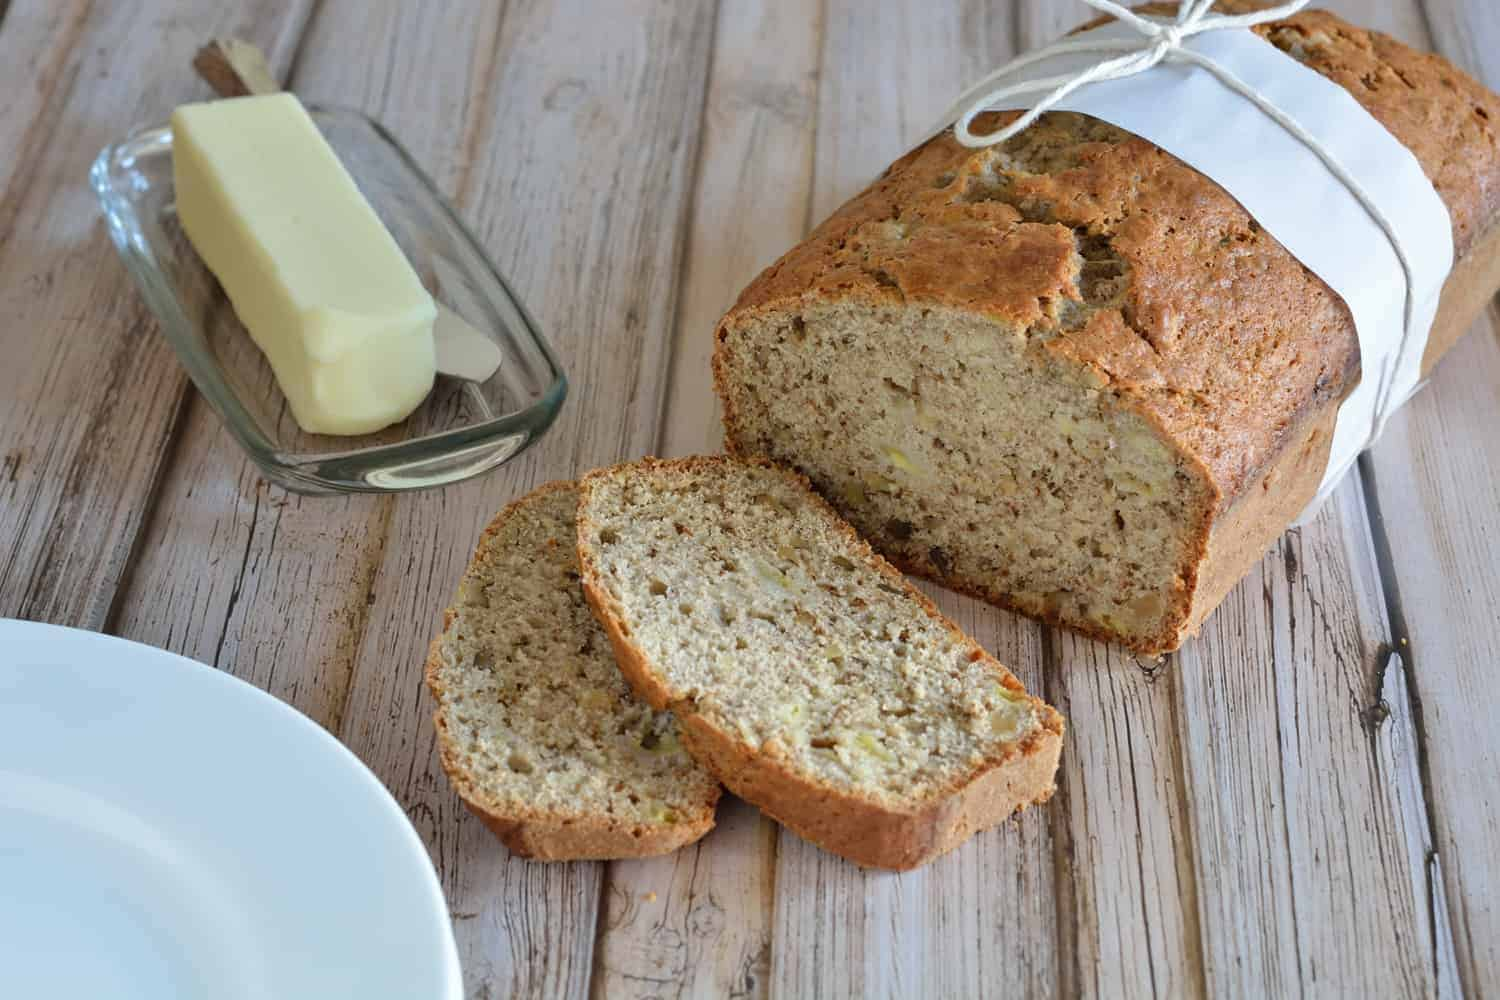 Banana Walnut Bread Recipe- The most moist classic banana walnut bread you will ever bake. I've been making this recipe for 17 years.   #bananabread   www.savoryexperiments.com